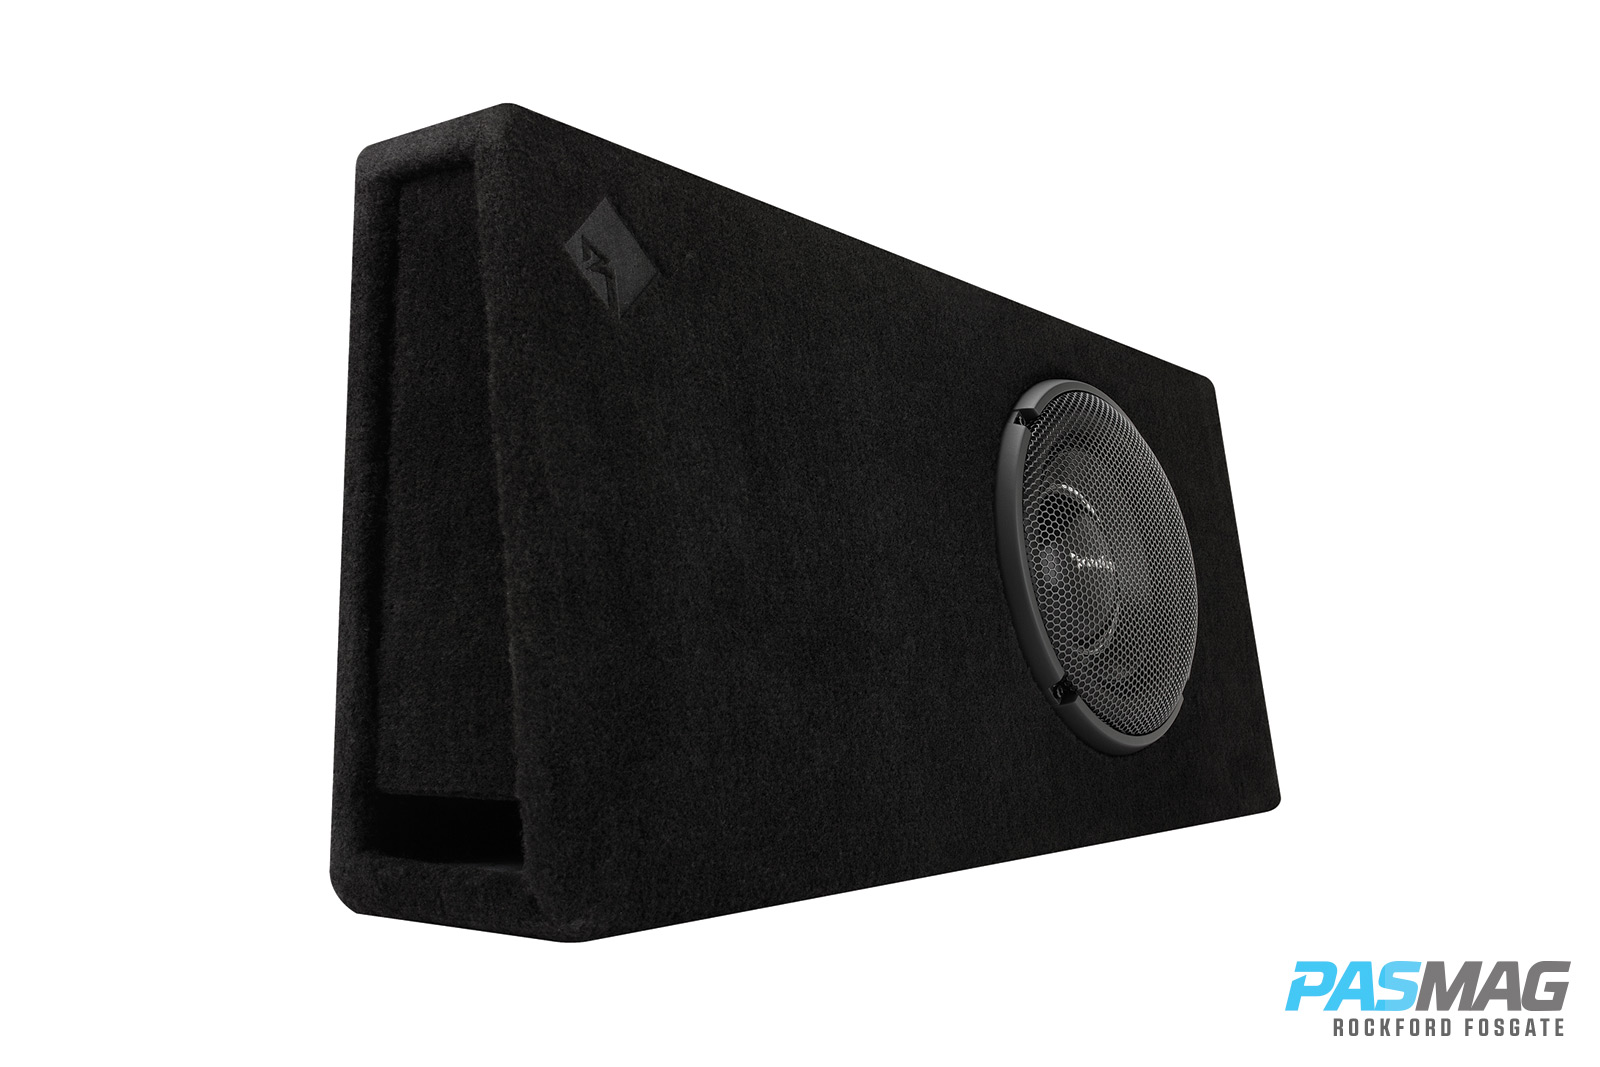 PASMAG Rockford Fosgate T1S1X10P Subwoofer System Review 2